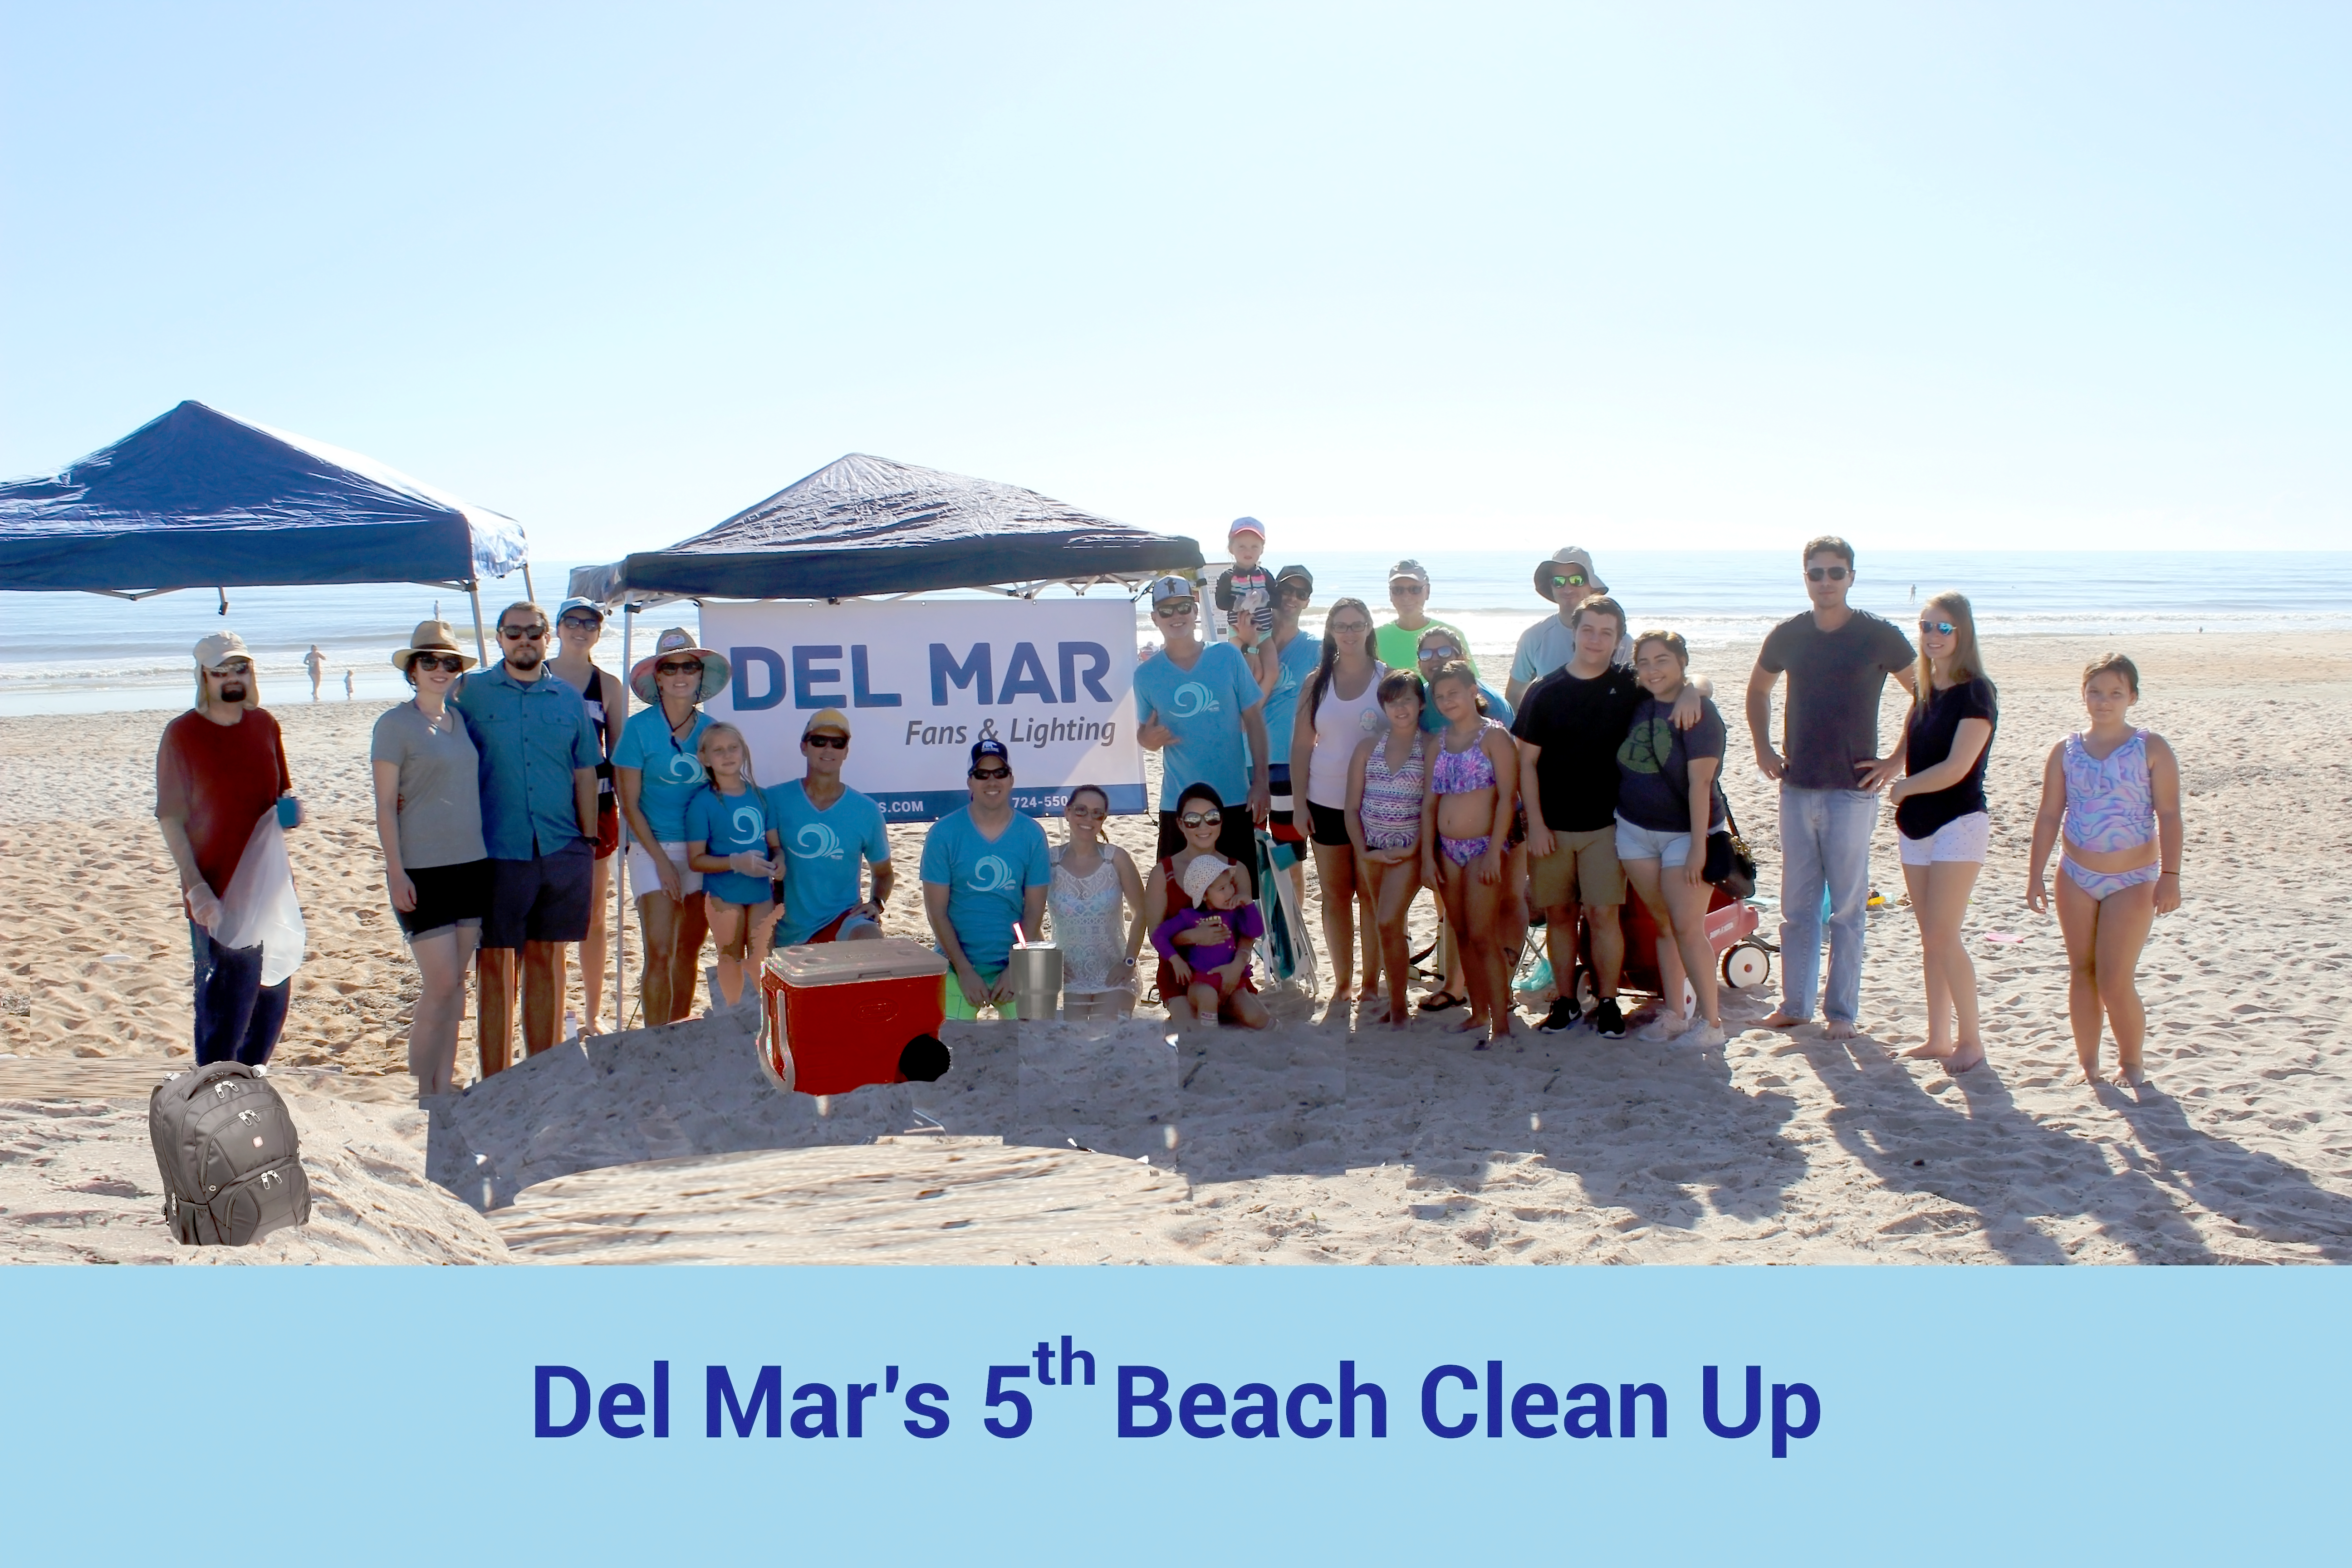 Del Mar's family and friends are shown in a group on the beach after the beach clean up.